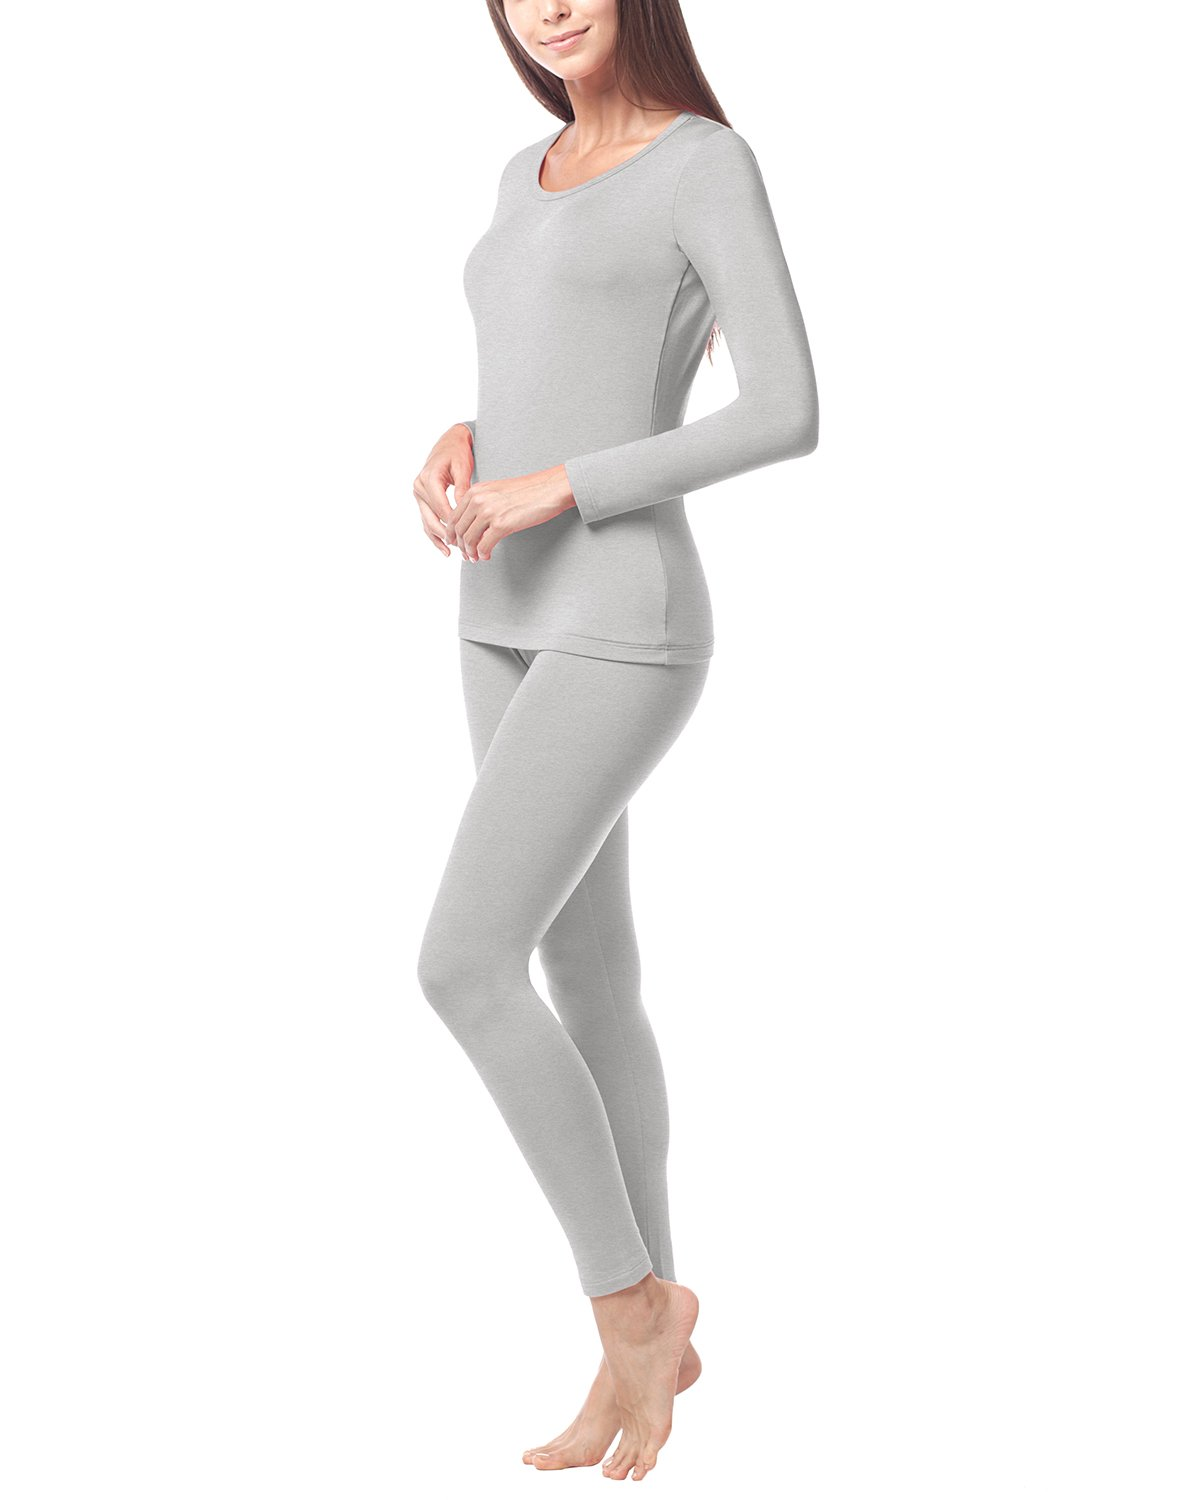 LAPASA Women's Lightweight Thermal Underwear Long John Set Fleece Lined Base Layer Top and Bottom L17 (Medium, Gray)